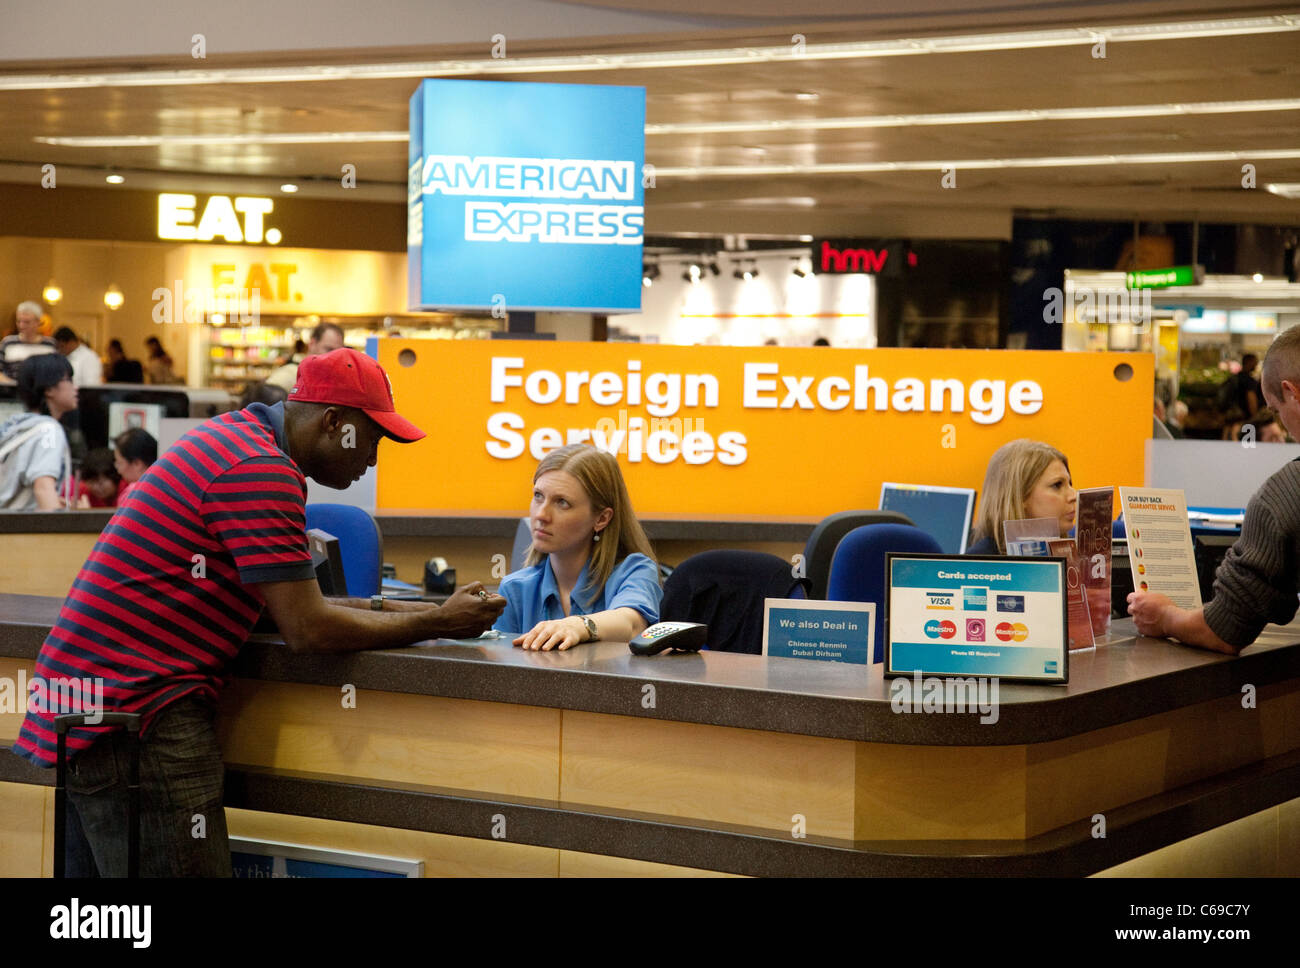 About Currency Exchange International - Stamford Town Center in Stamford, CT: